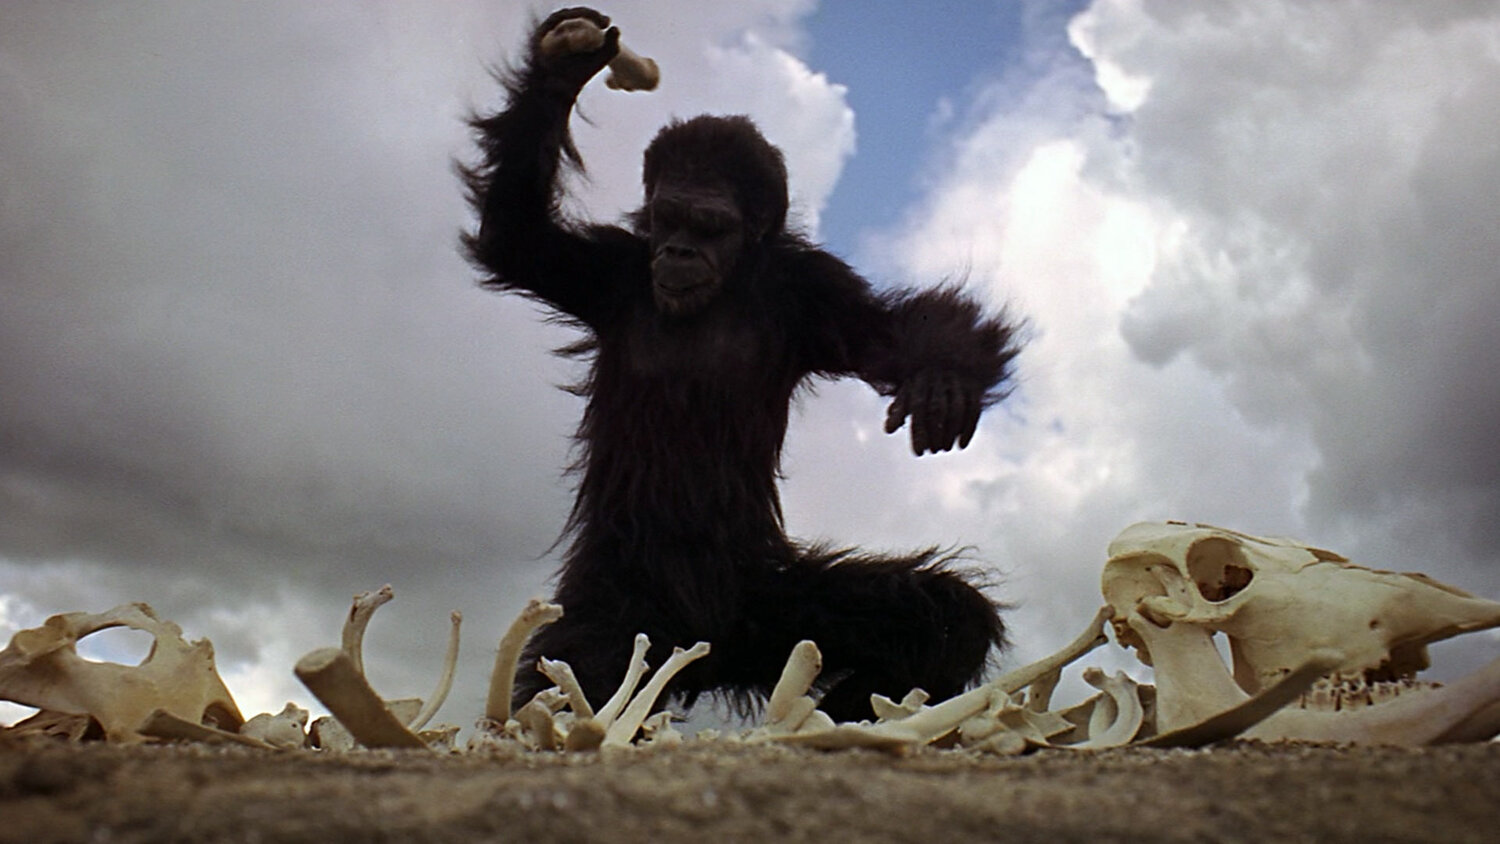 2001-A-Space-Odyssey-The-hominid-grabs-a-large-bone-and-begins-pounding-the-ground-and-other-bones-around-him.jpg